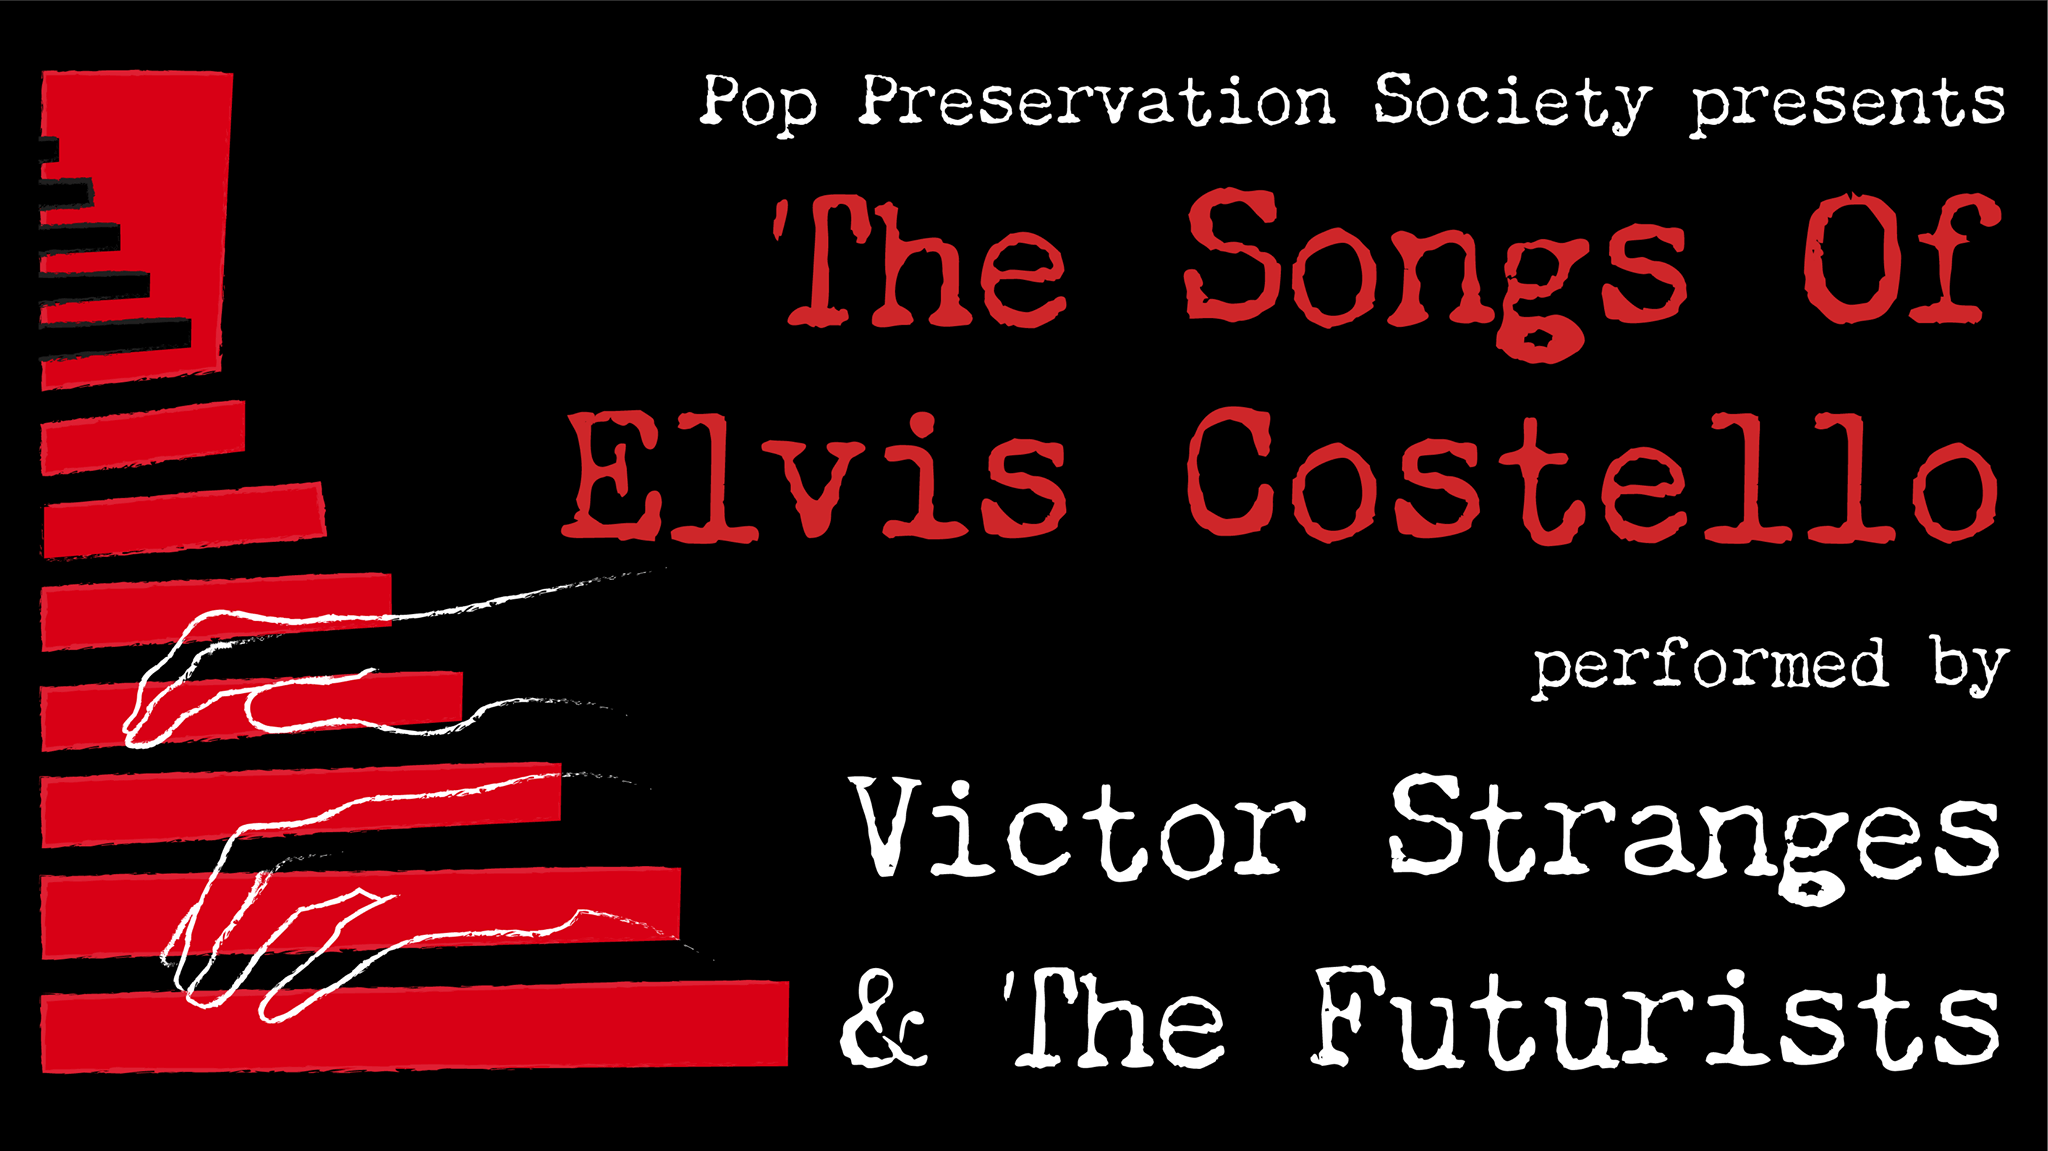 The Songs of Elvis Costello 19 Feb 1400